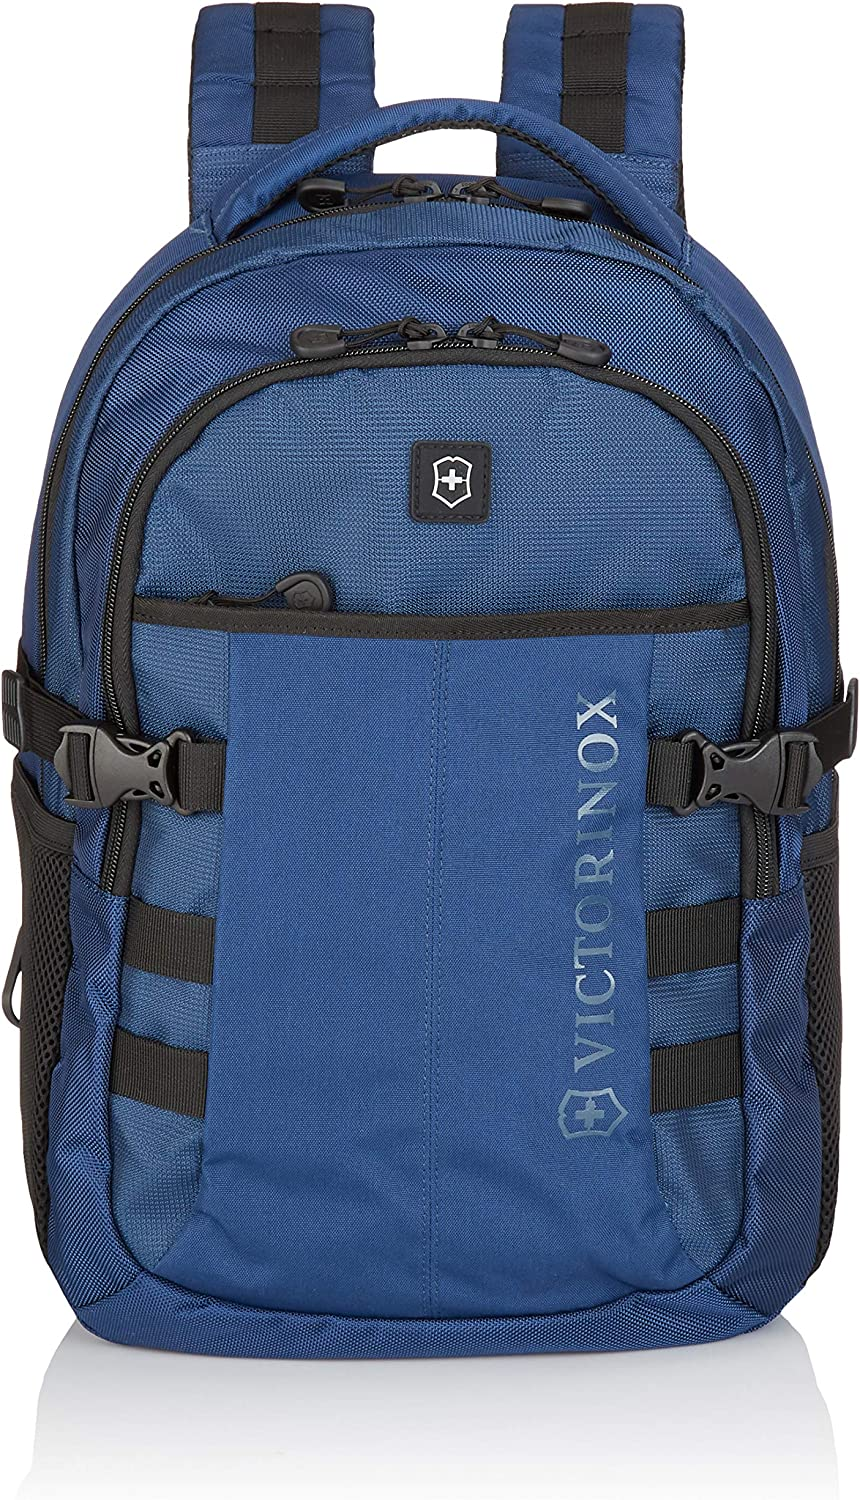 Victorinox VX Sport Cadet Laptop Backpack, Blue/Black, 19-Inch